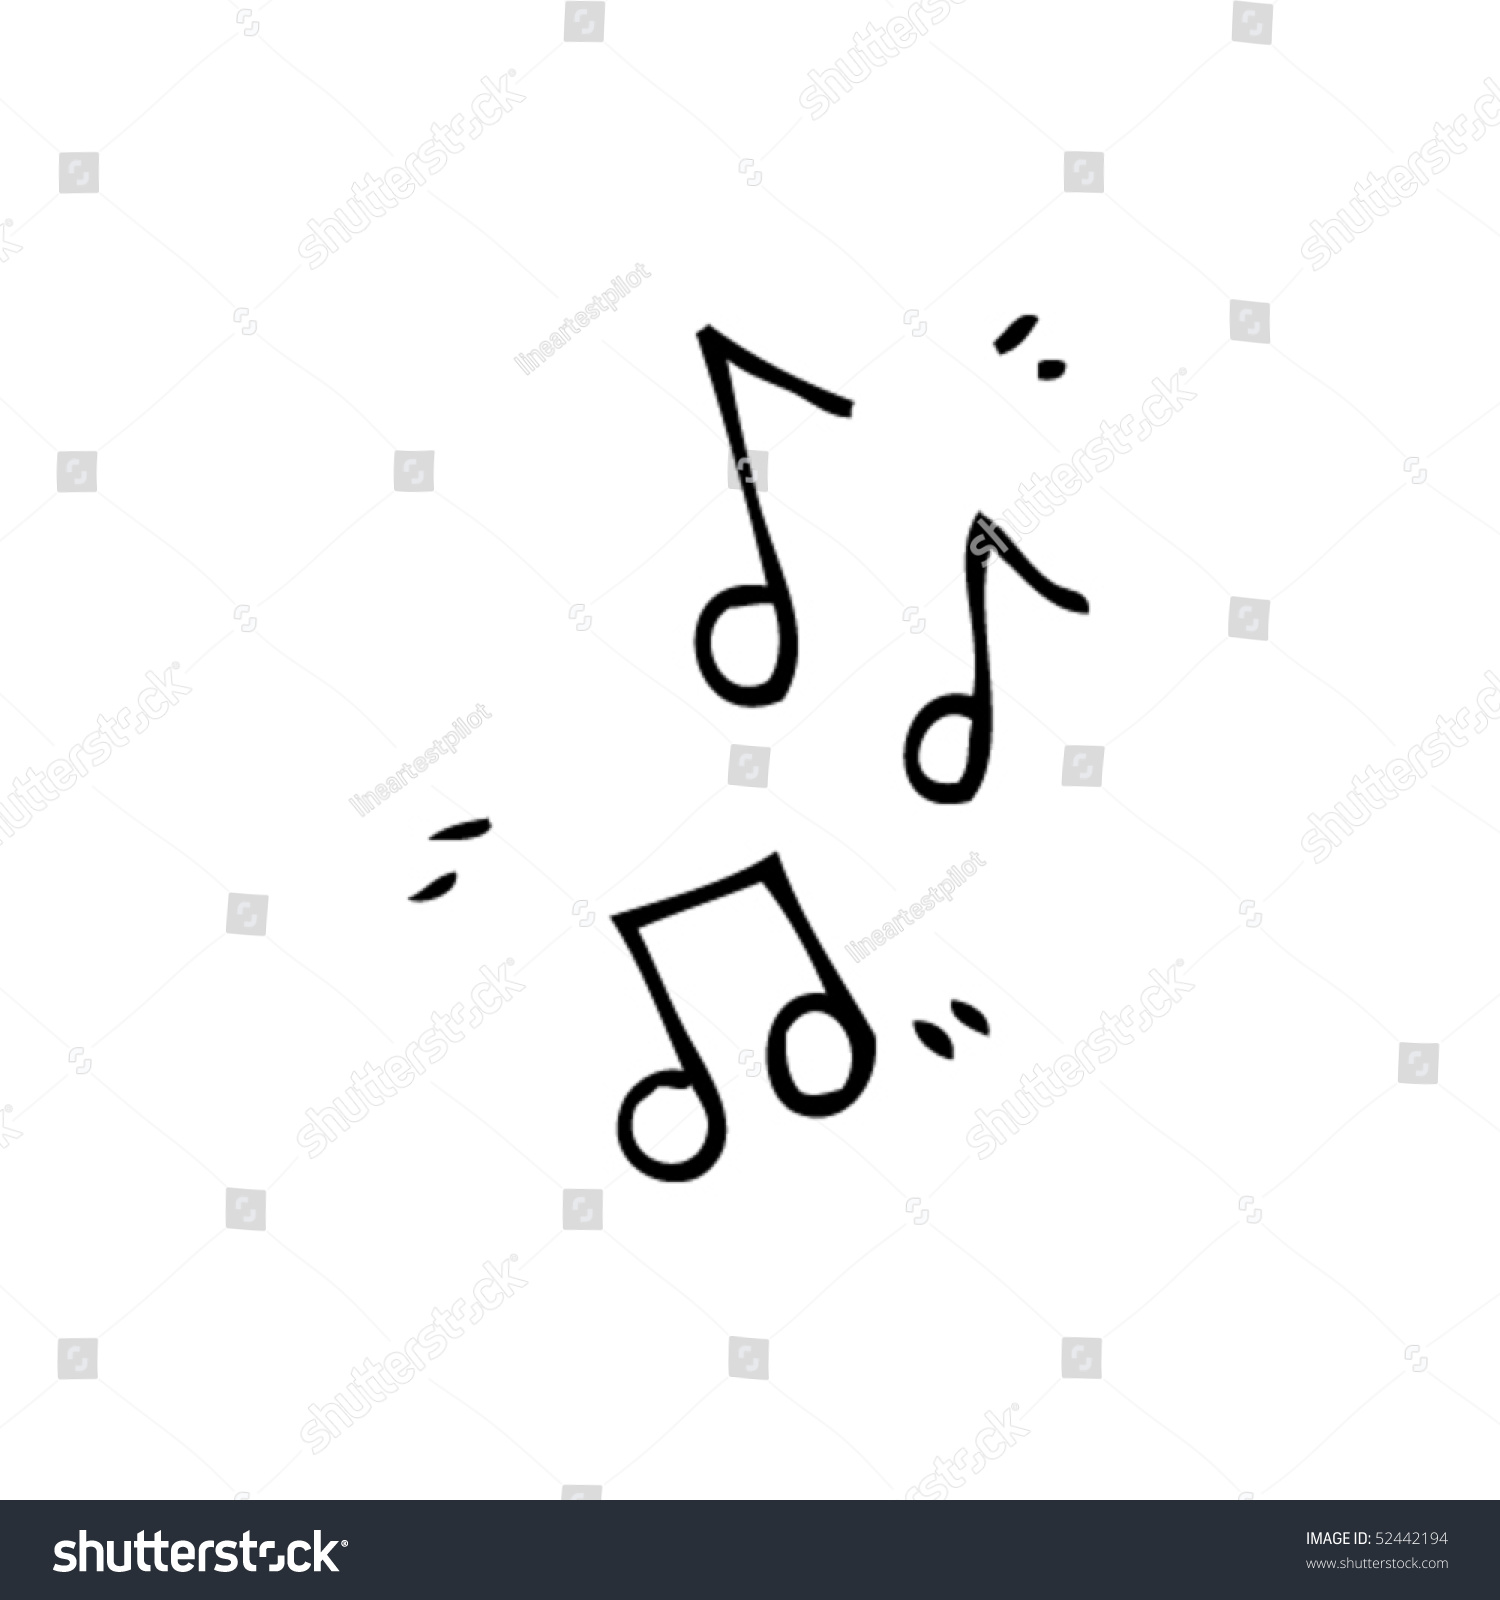 quirky drawing music notes stock vector 52442194 shutterstock